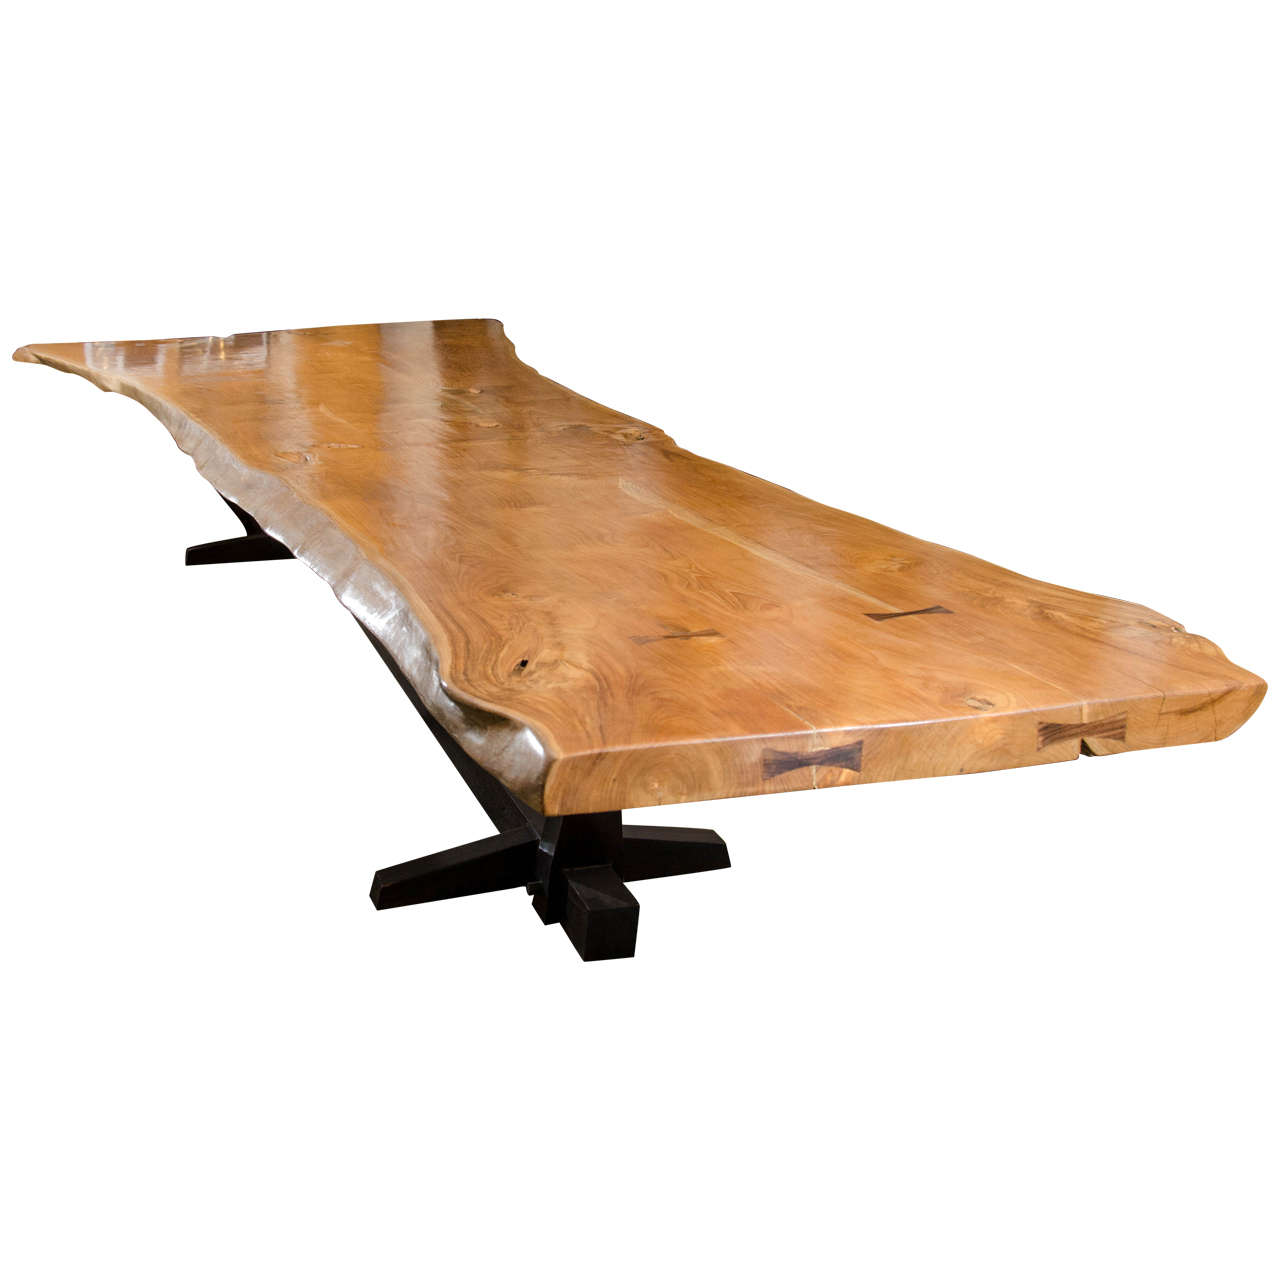 Andrianna Shamaris Massive Teak Wood Live Edge Dining Table For